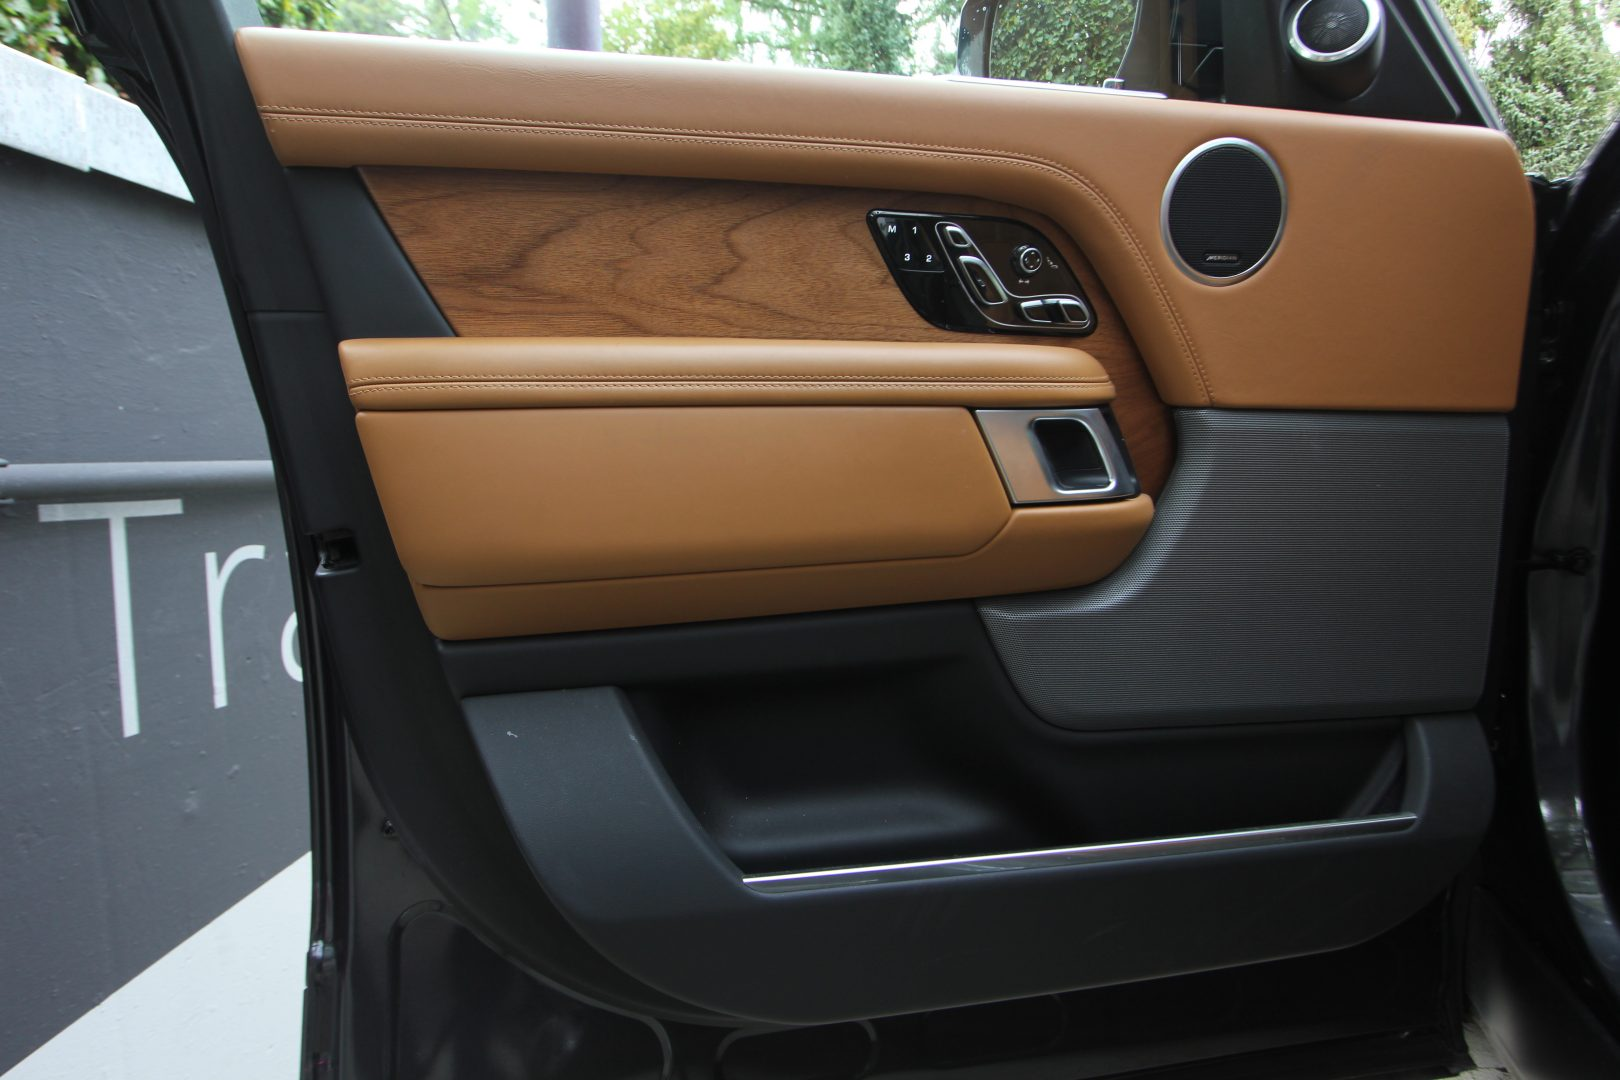 AIL Land Rover Range Rover SDV8 Autobiography 11